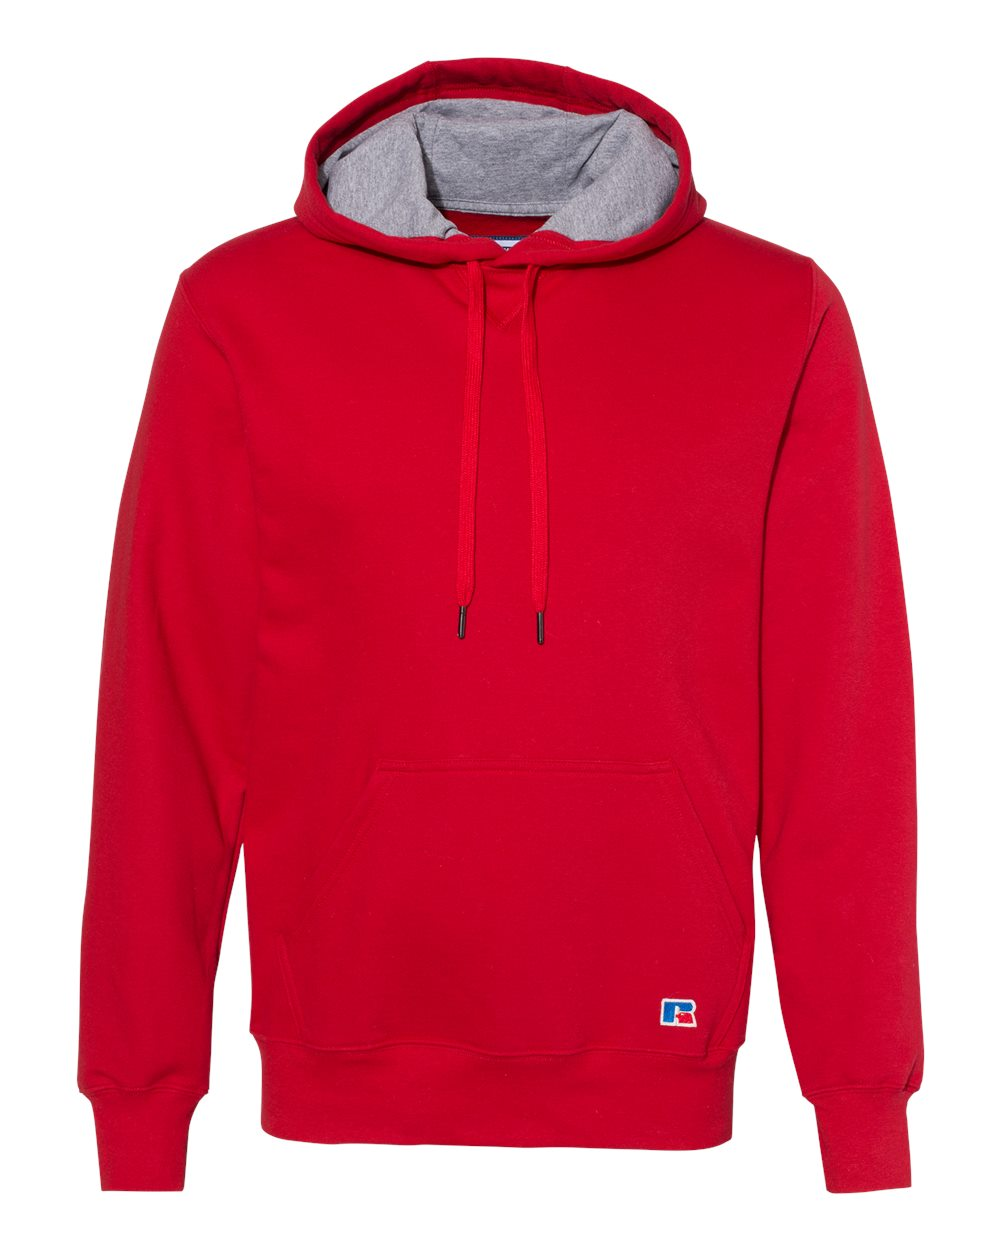 Russell-Athletic-Mens-Cotton-Rich-Fleece-Hooded-Sweatshirt-82ONSM-up-to-3XL miniature 24